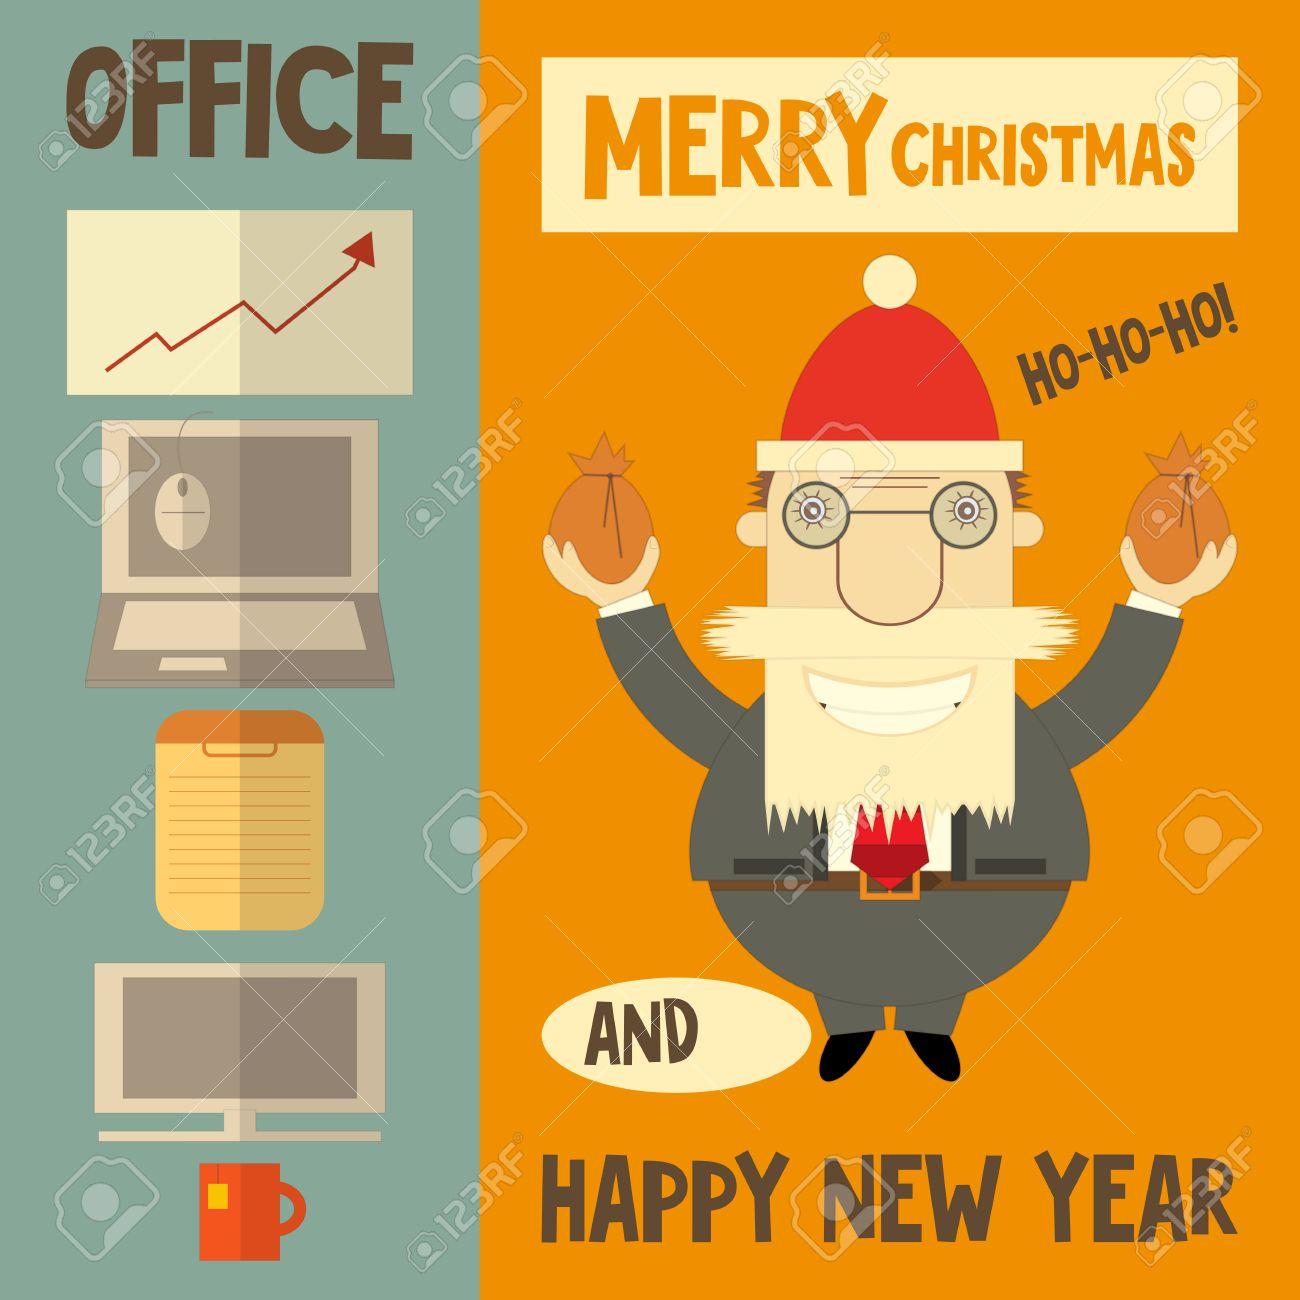 Christmas card for boss funny christmas cards 2018 christmas card for boss funny kristyandbryce Image collections